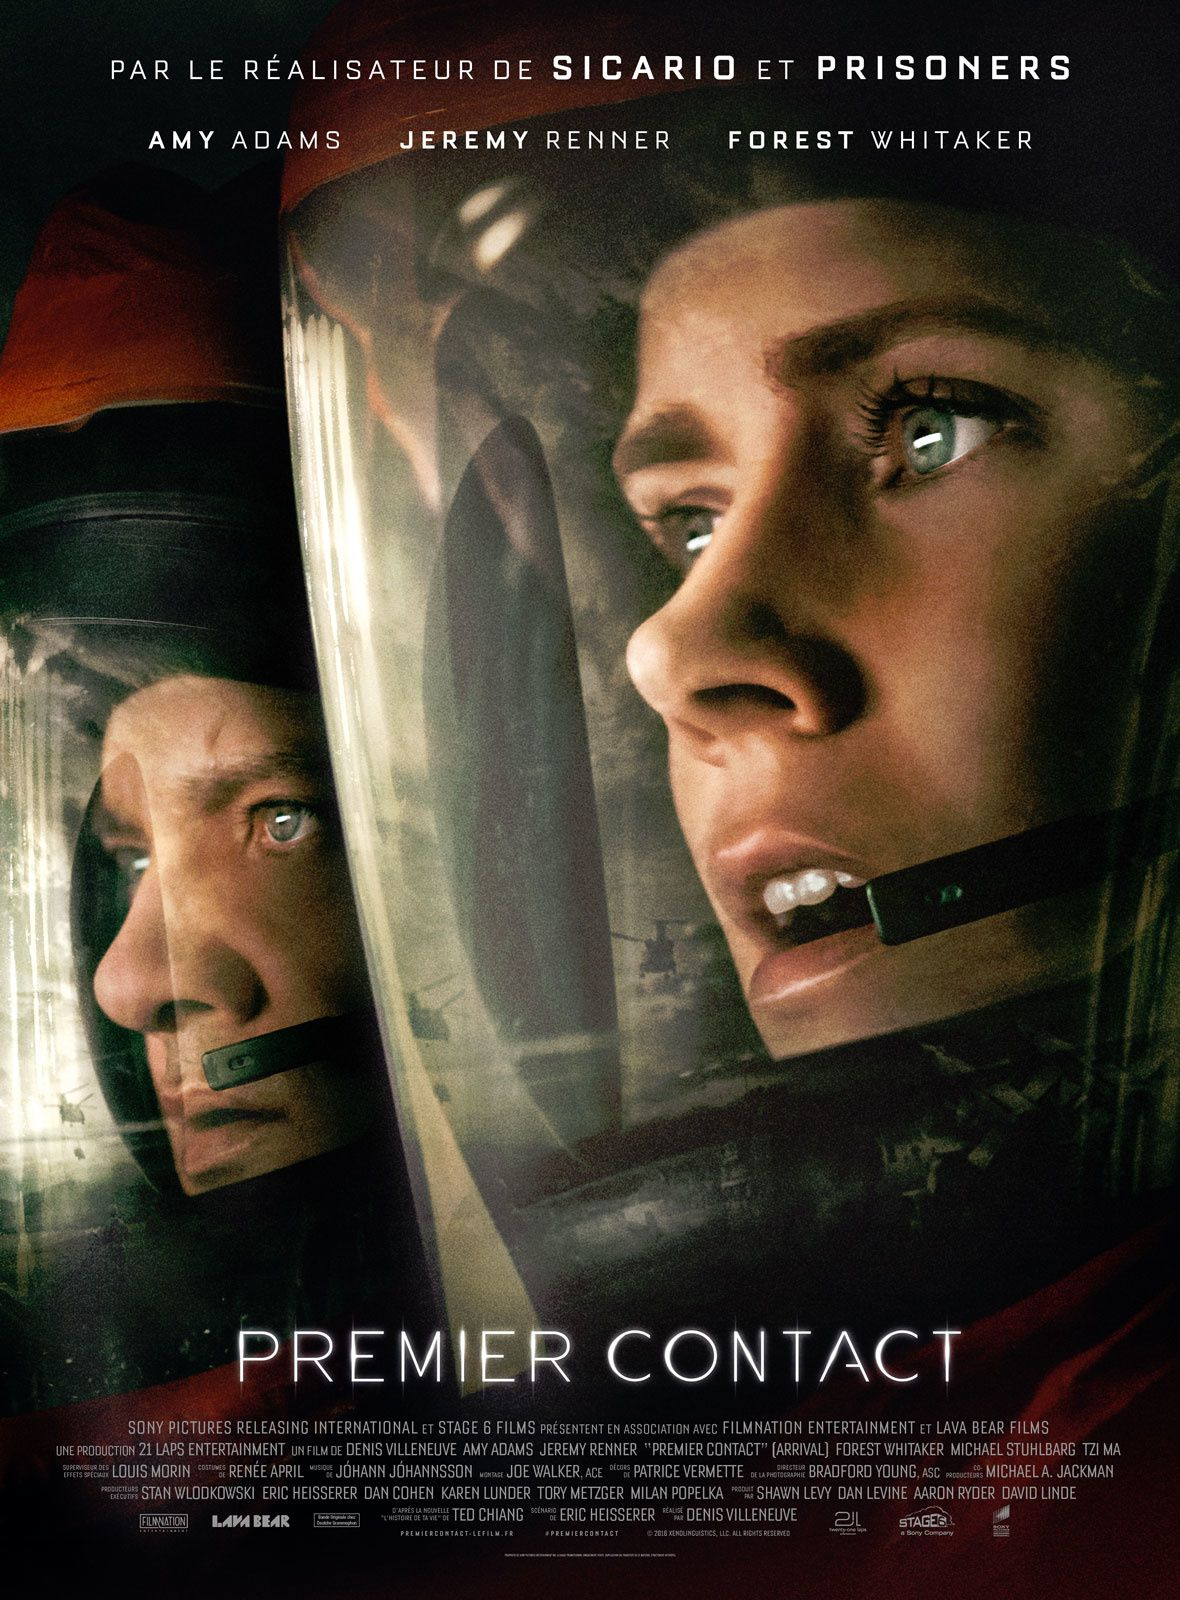 SOLARIS, PASSENGERS, PREMIER CONTACT : quand les films de science fiction explorent l'espace et la psychologie humaine